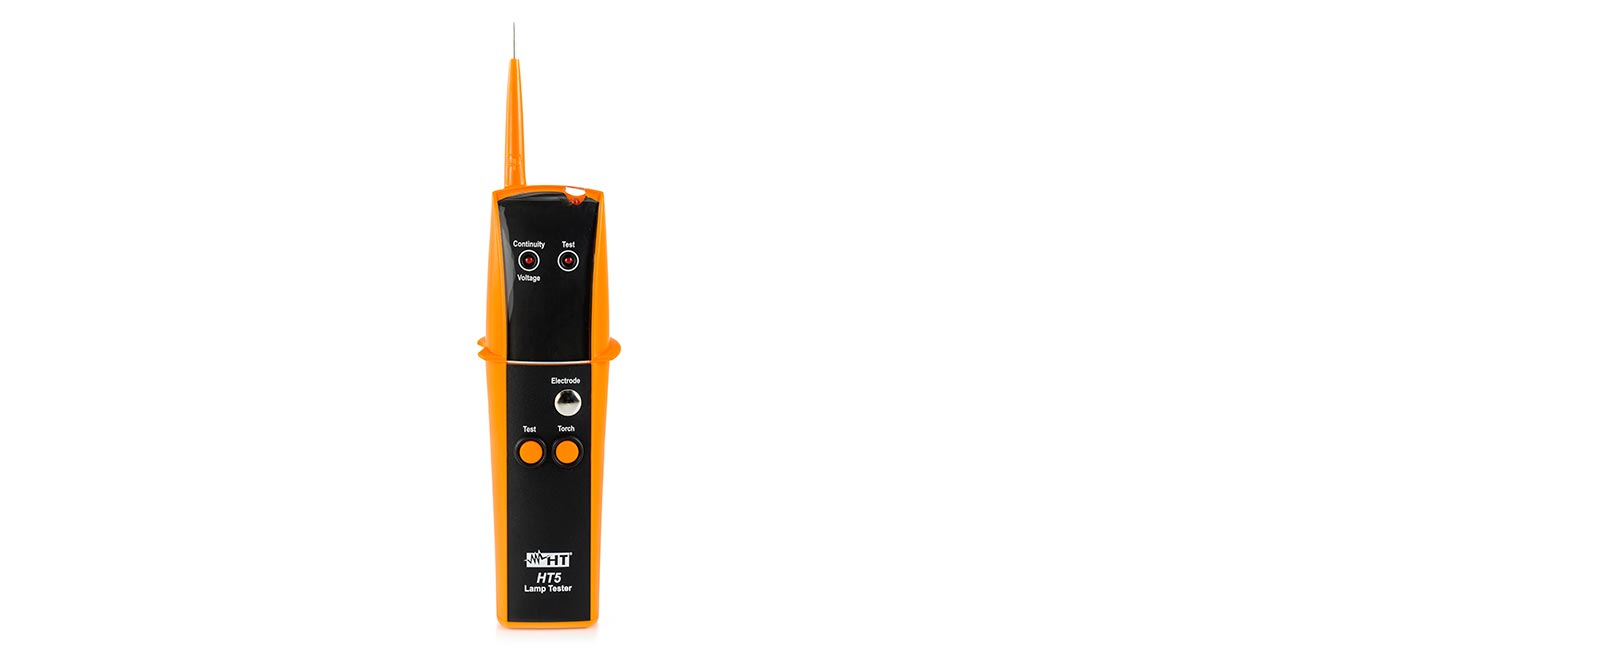 HT5, Voltage detectors and others, Phase detector